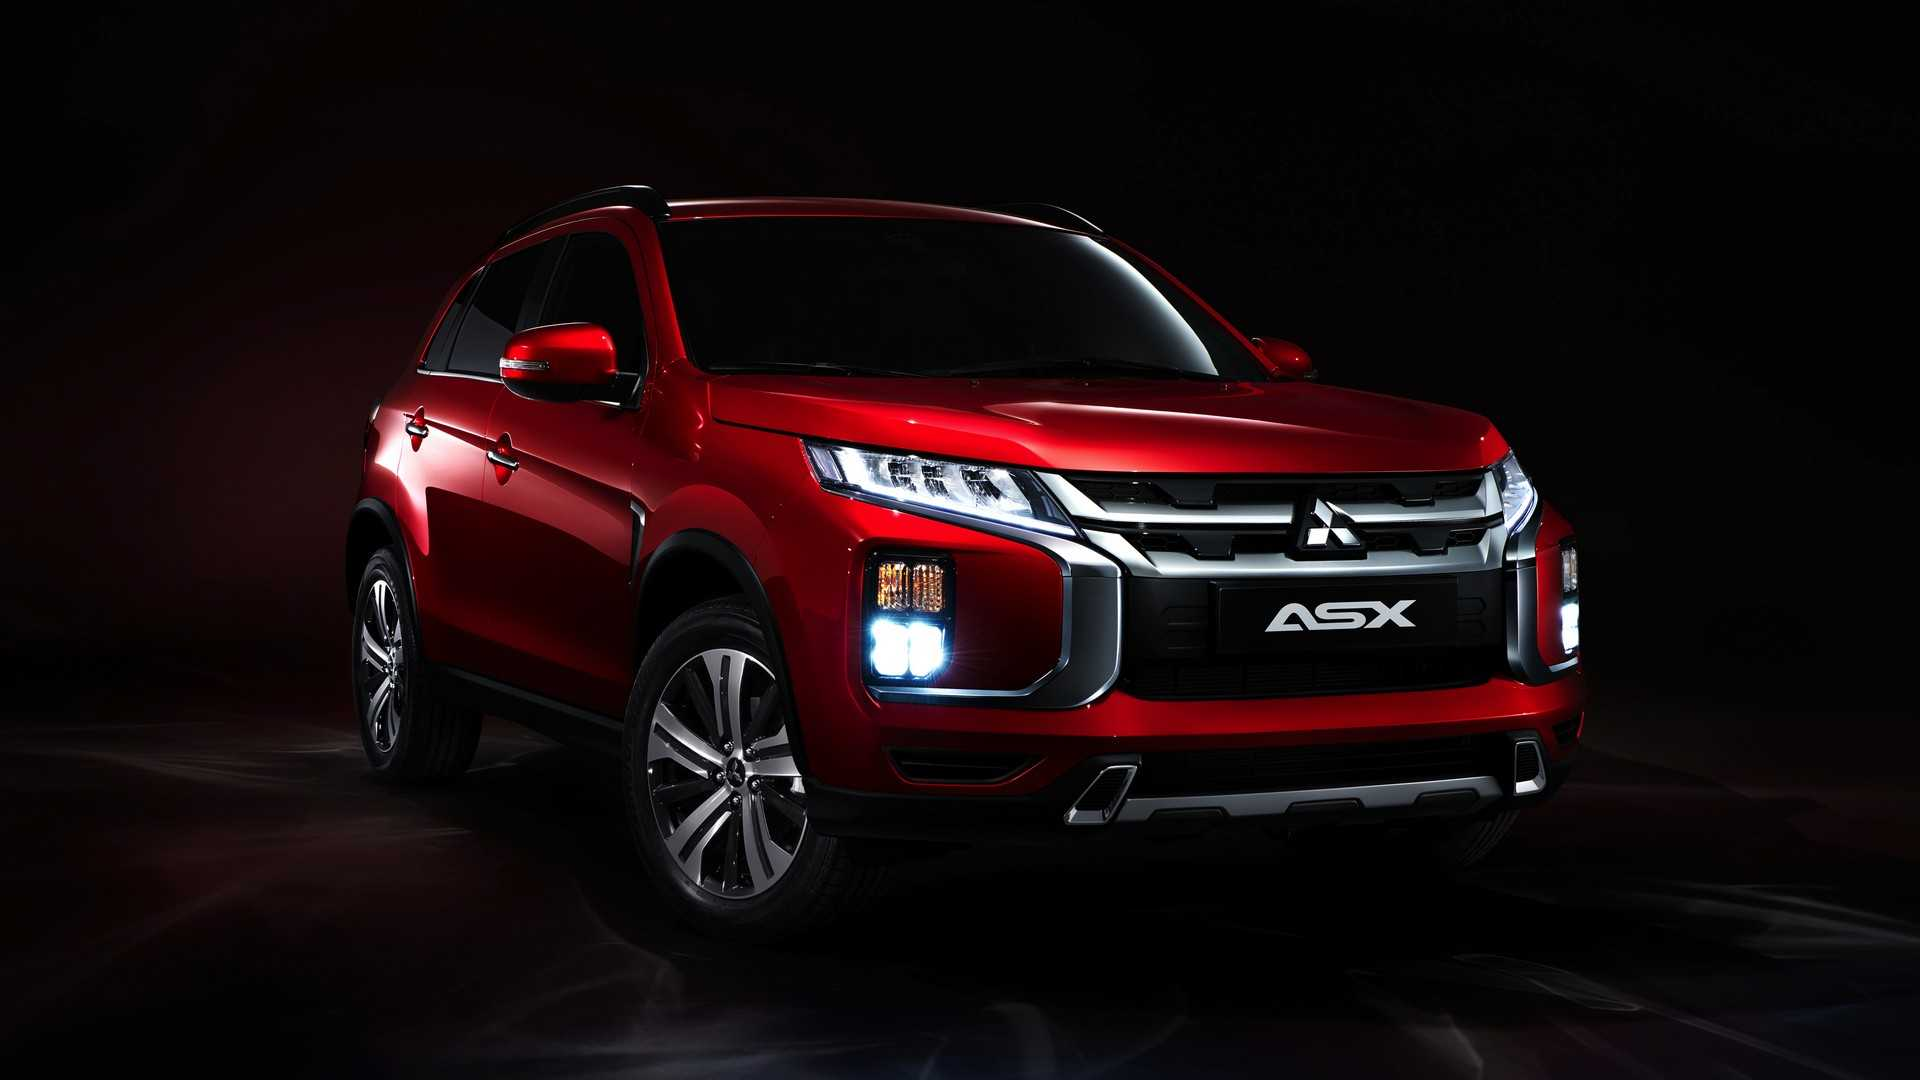 2020 Mitsubishi Outlander Sport: Updated Styling And Infotainment System, Release, Price >> 2020 Mitsubishi Asx Unveiled With Major Facelift